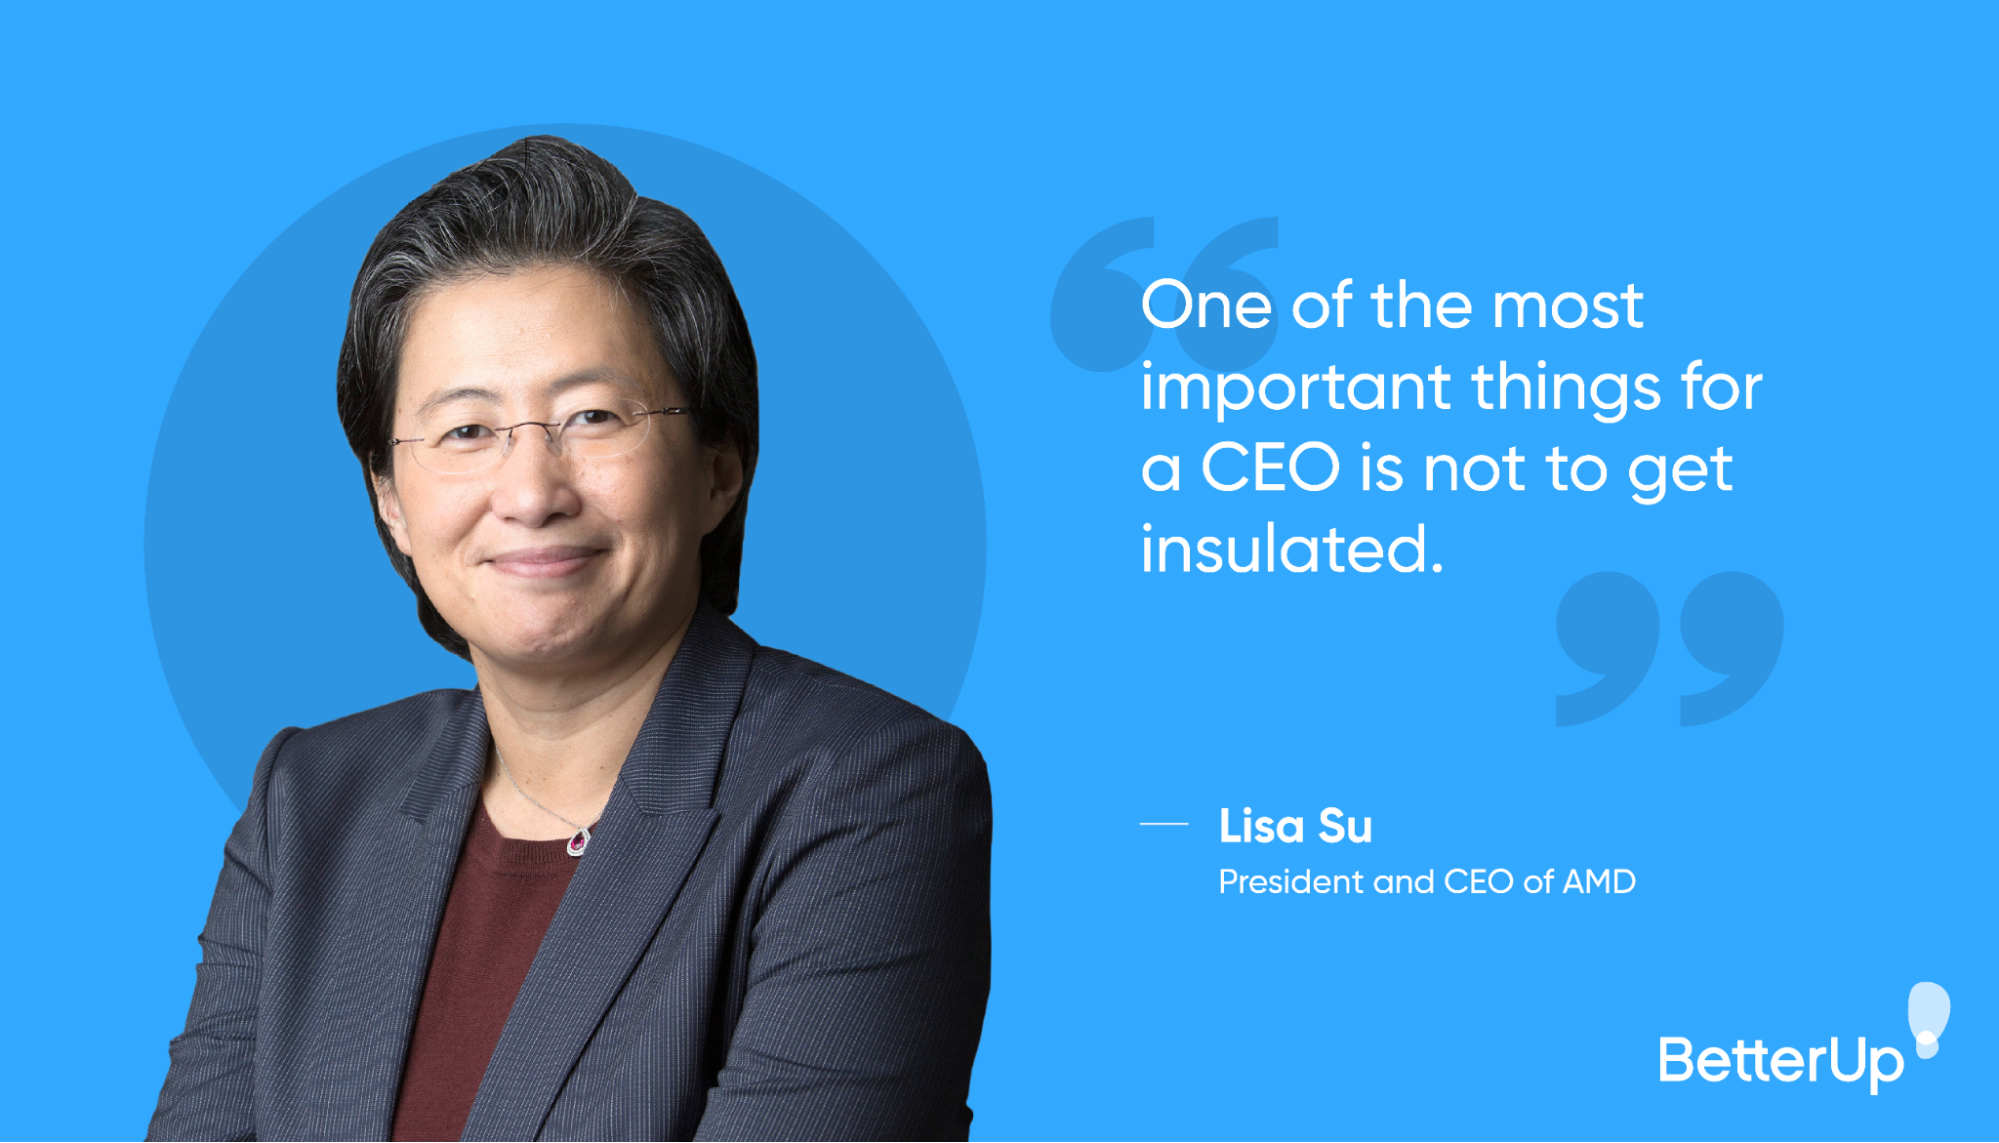 a-leadership-quote-from-Lisa-Su-values-of-a-leader